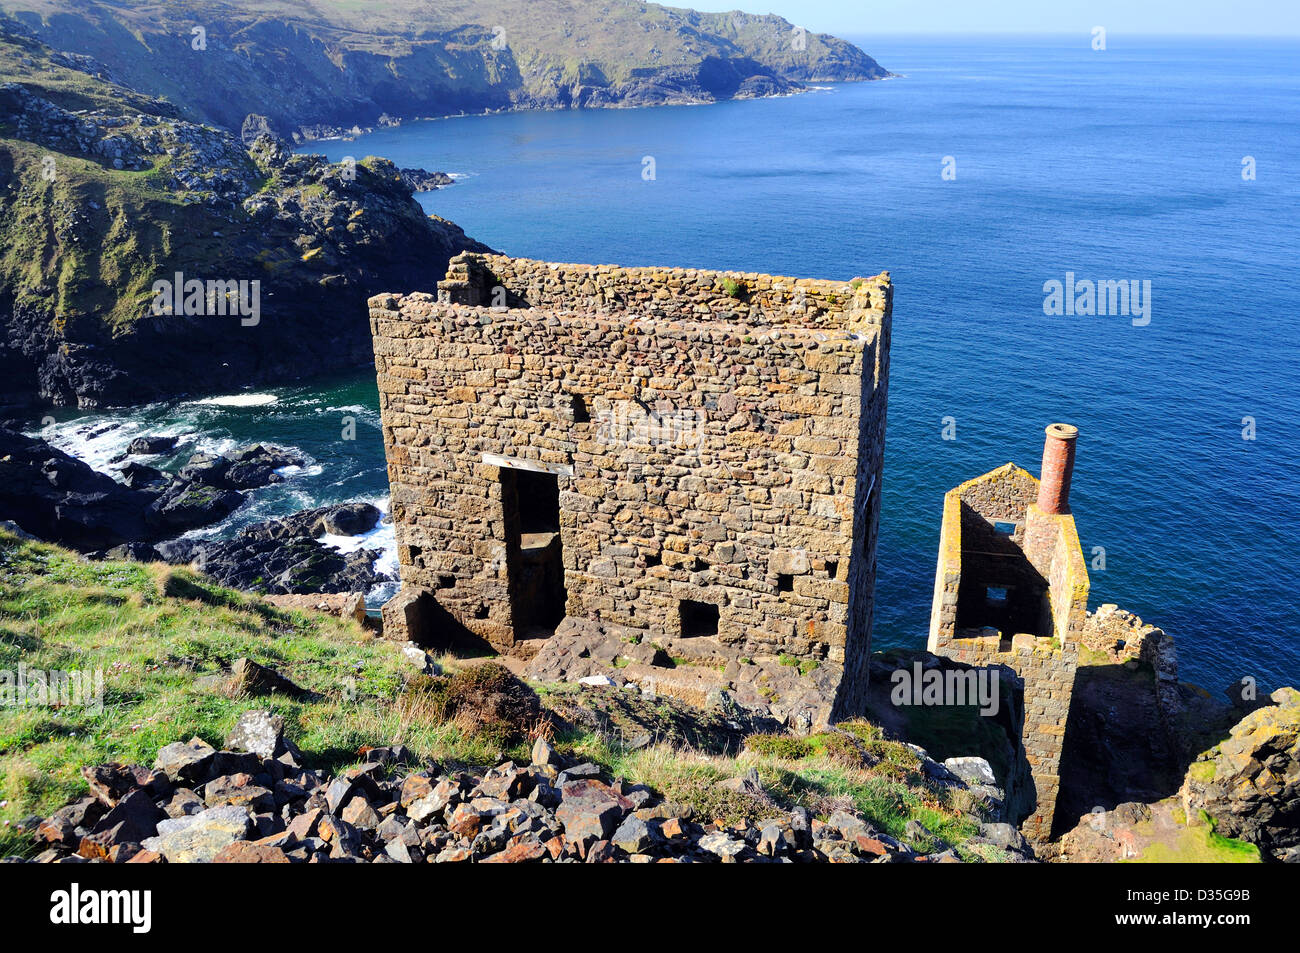 old tin mines on the coastal cliffs near botallack in cornwall, uk - Stock Image